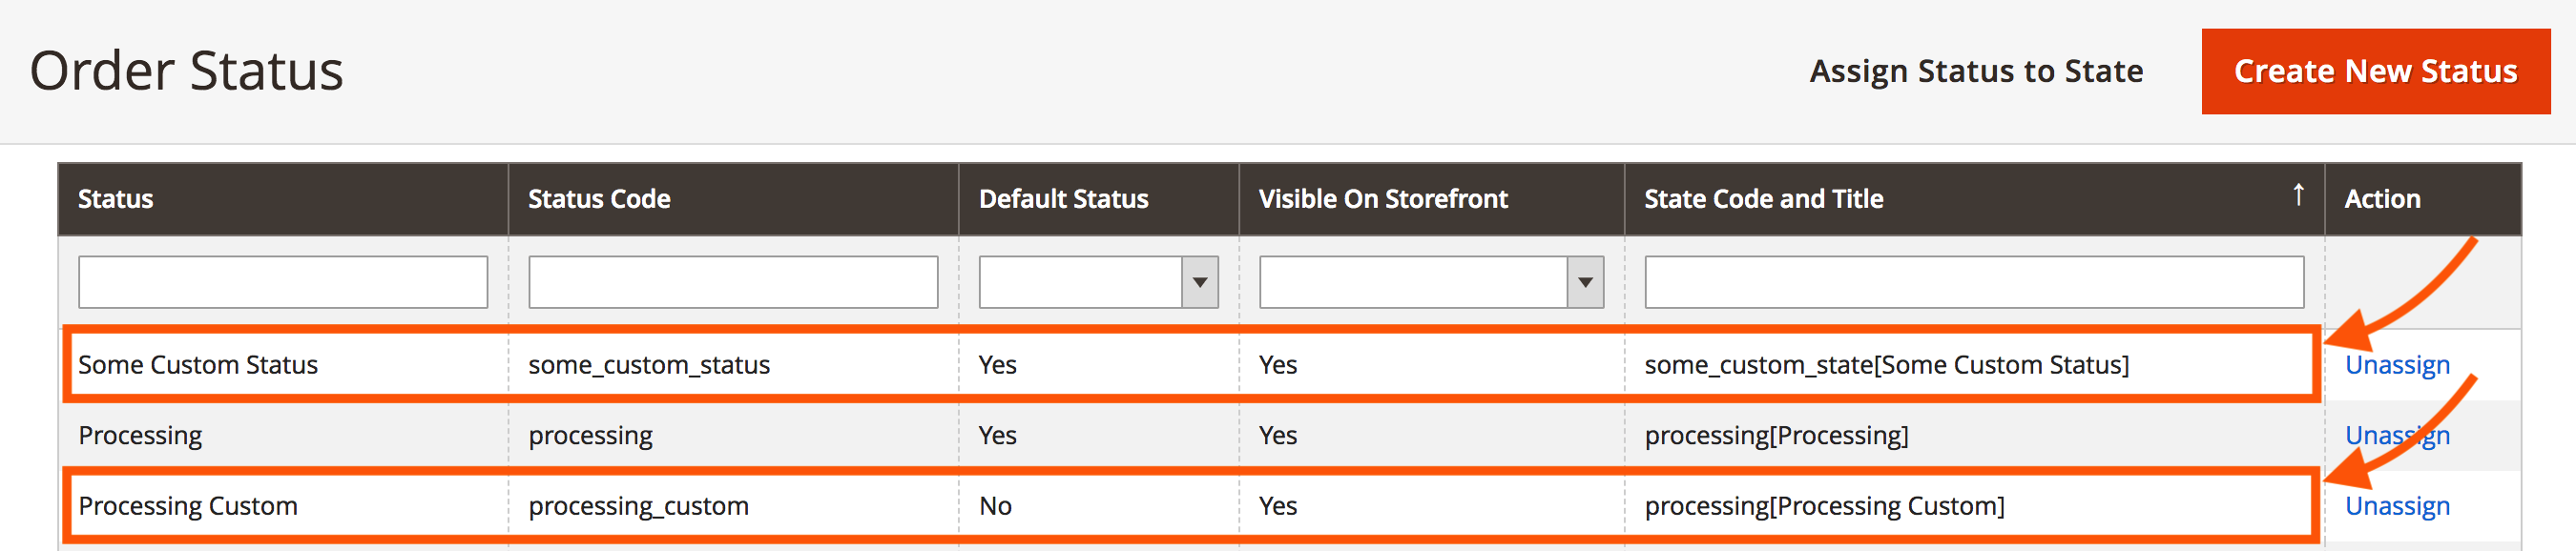 How to create new order state and status programmatically in Magento 2